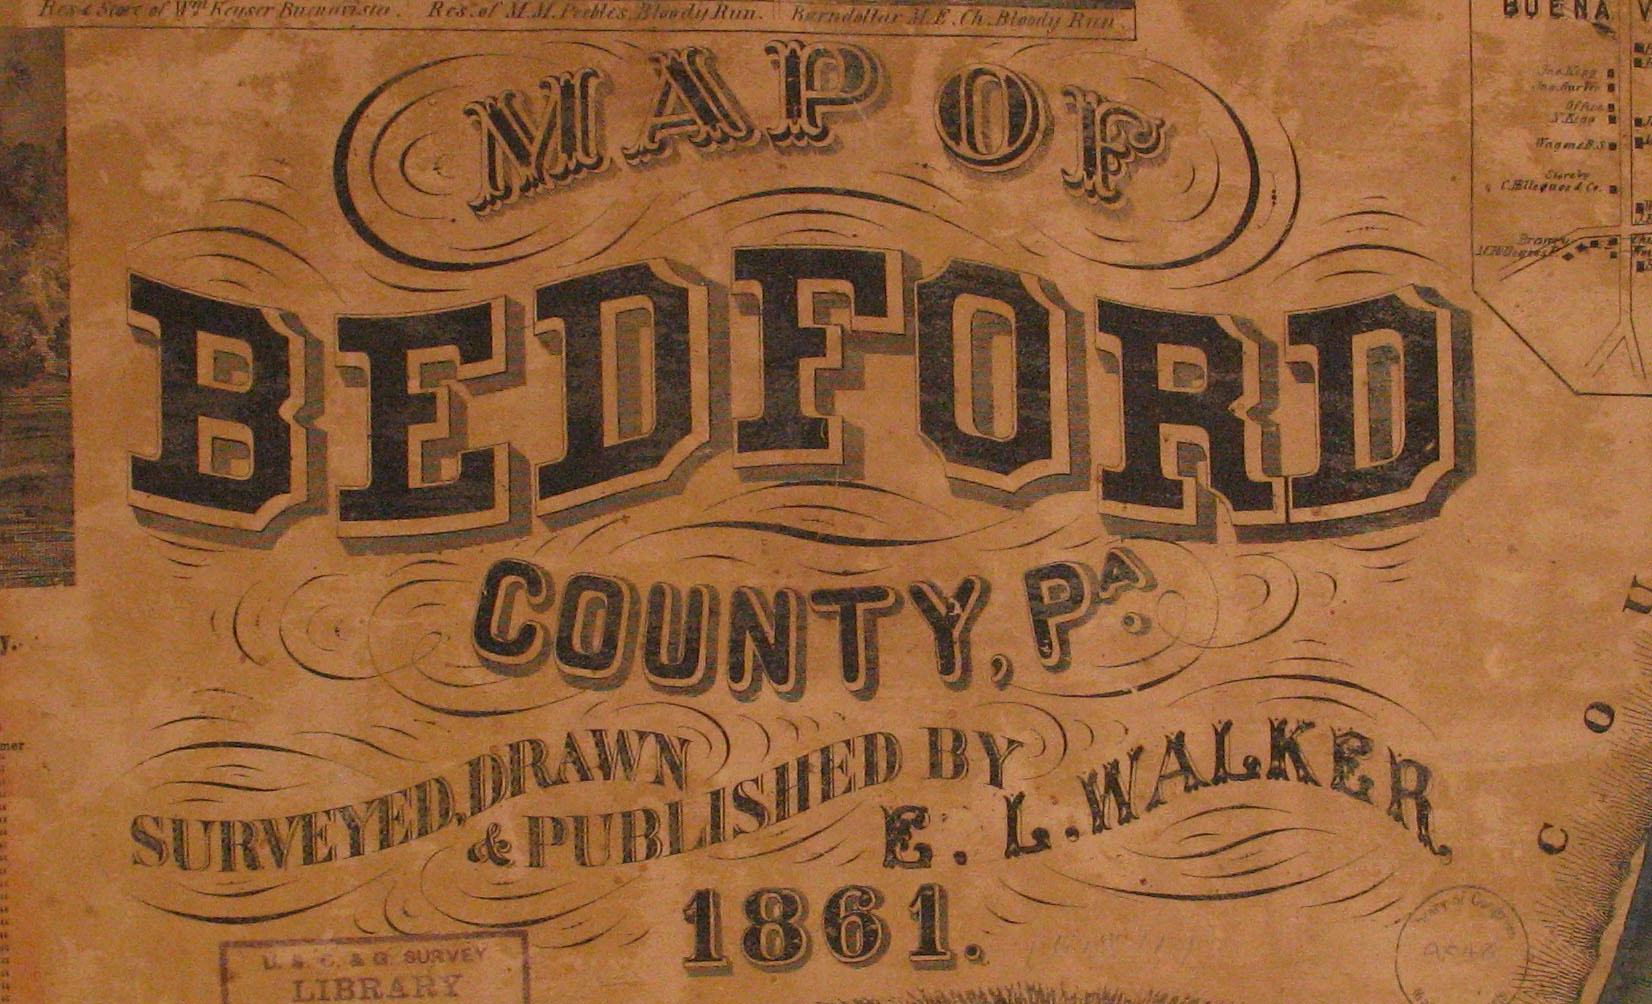 Ancestor Tracks: Bedford County Landowner Map, 1861 on map of new york, map of colonial pennsylvania, map of pennsylvania with cities, map of tn, map of az, county map pa, map of il, map of western pennsylvania, map of oh, map of philadelphia, map of ohio, map of wv, map of ms, map of harrisburg pennsylvania, map of mn, map of panama, google maps pa, map of ia, map of wi, map usa,